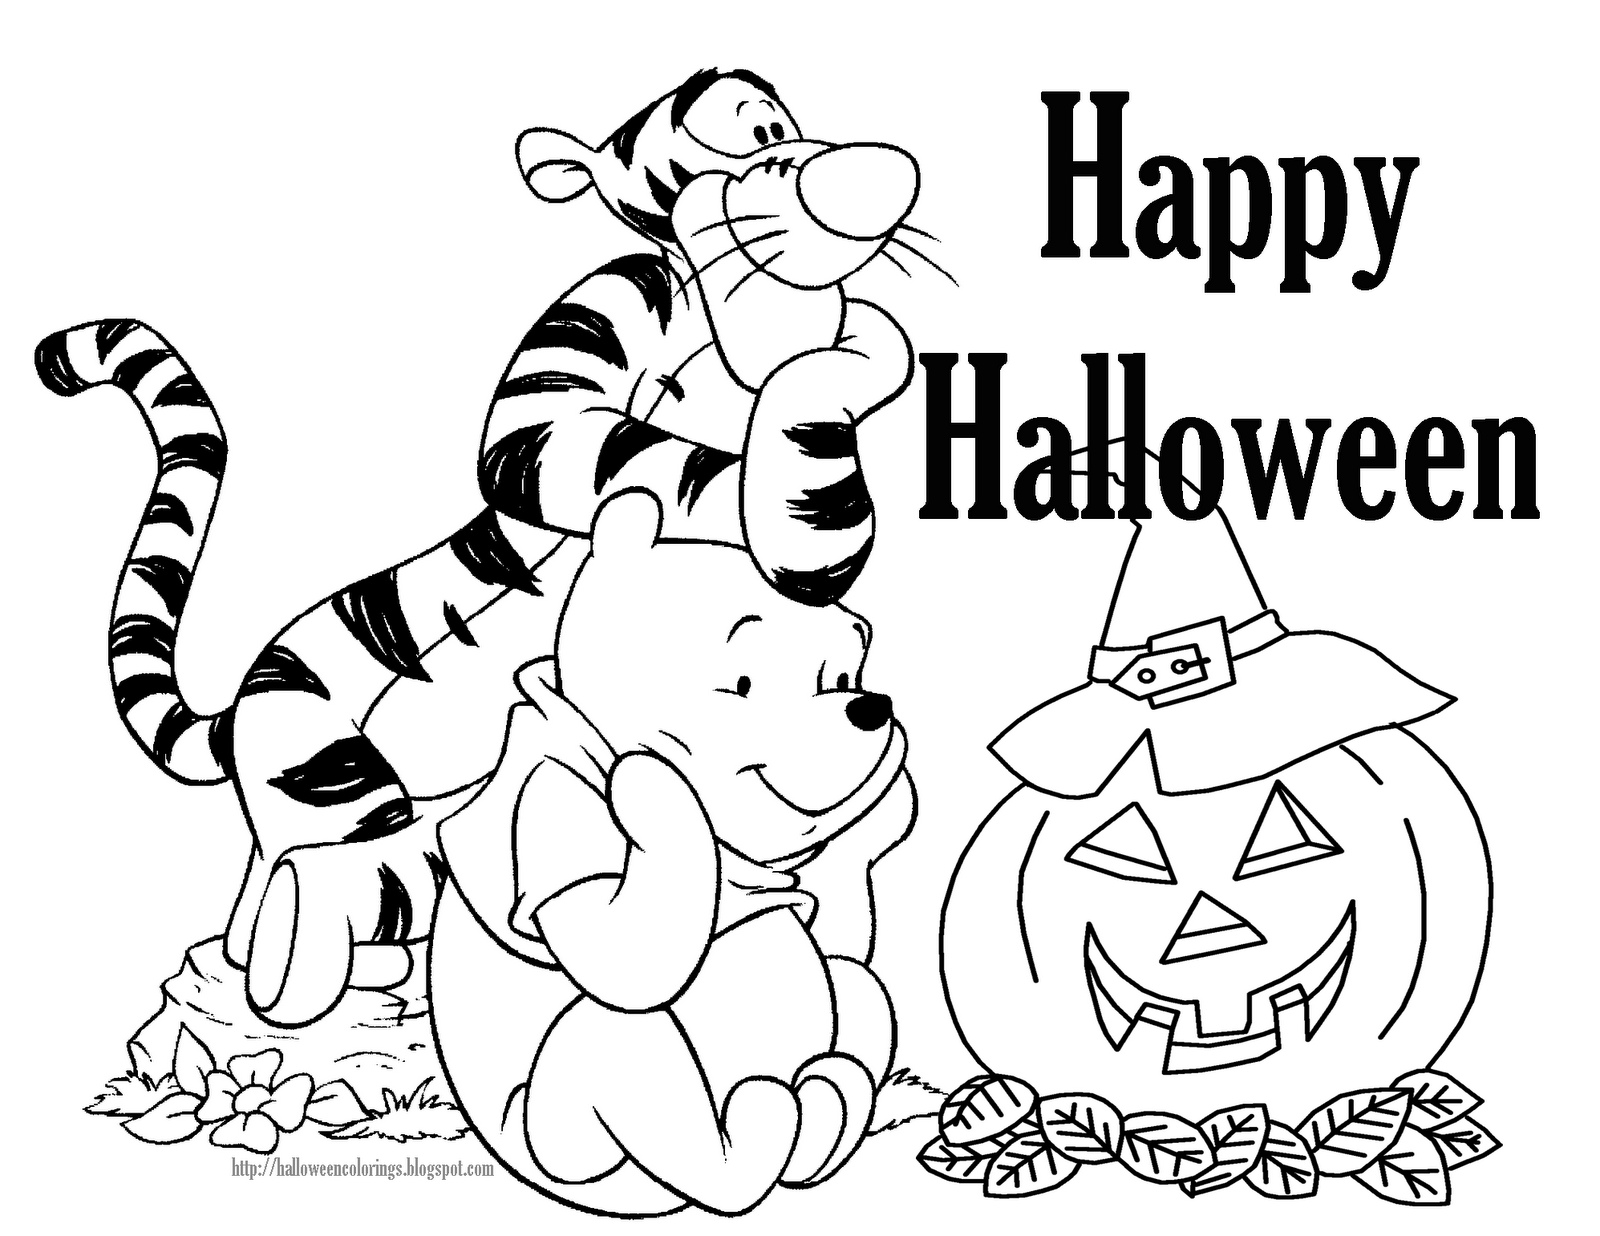 Fun & Free Halloween Coloring Pages Parents - printable halloween coloring pages free